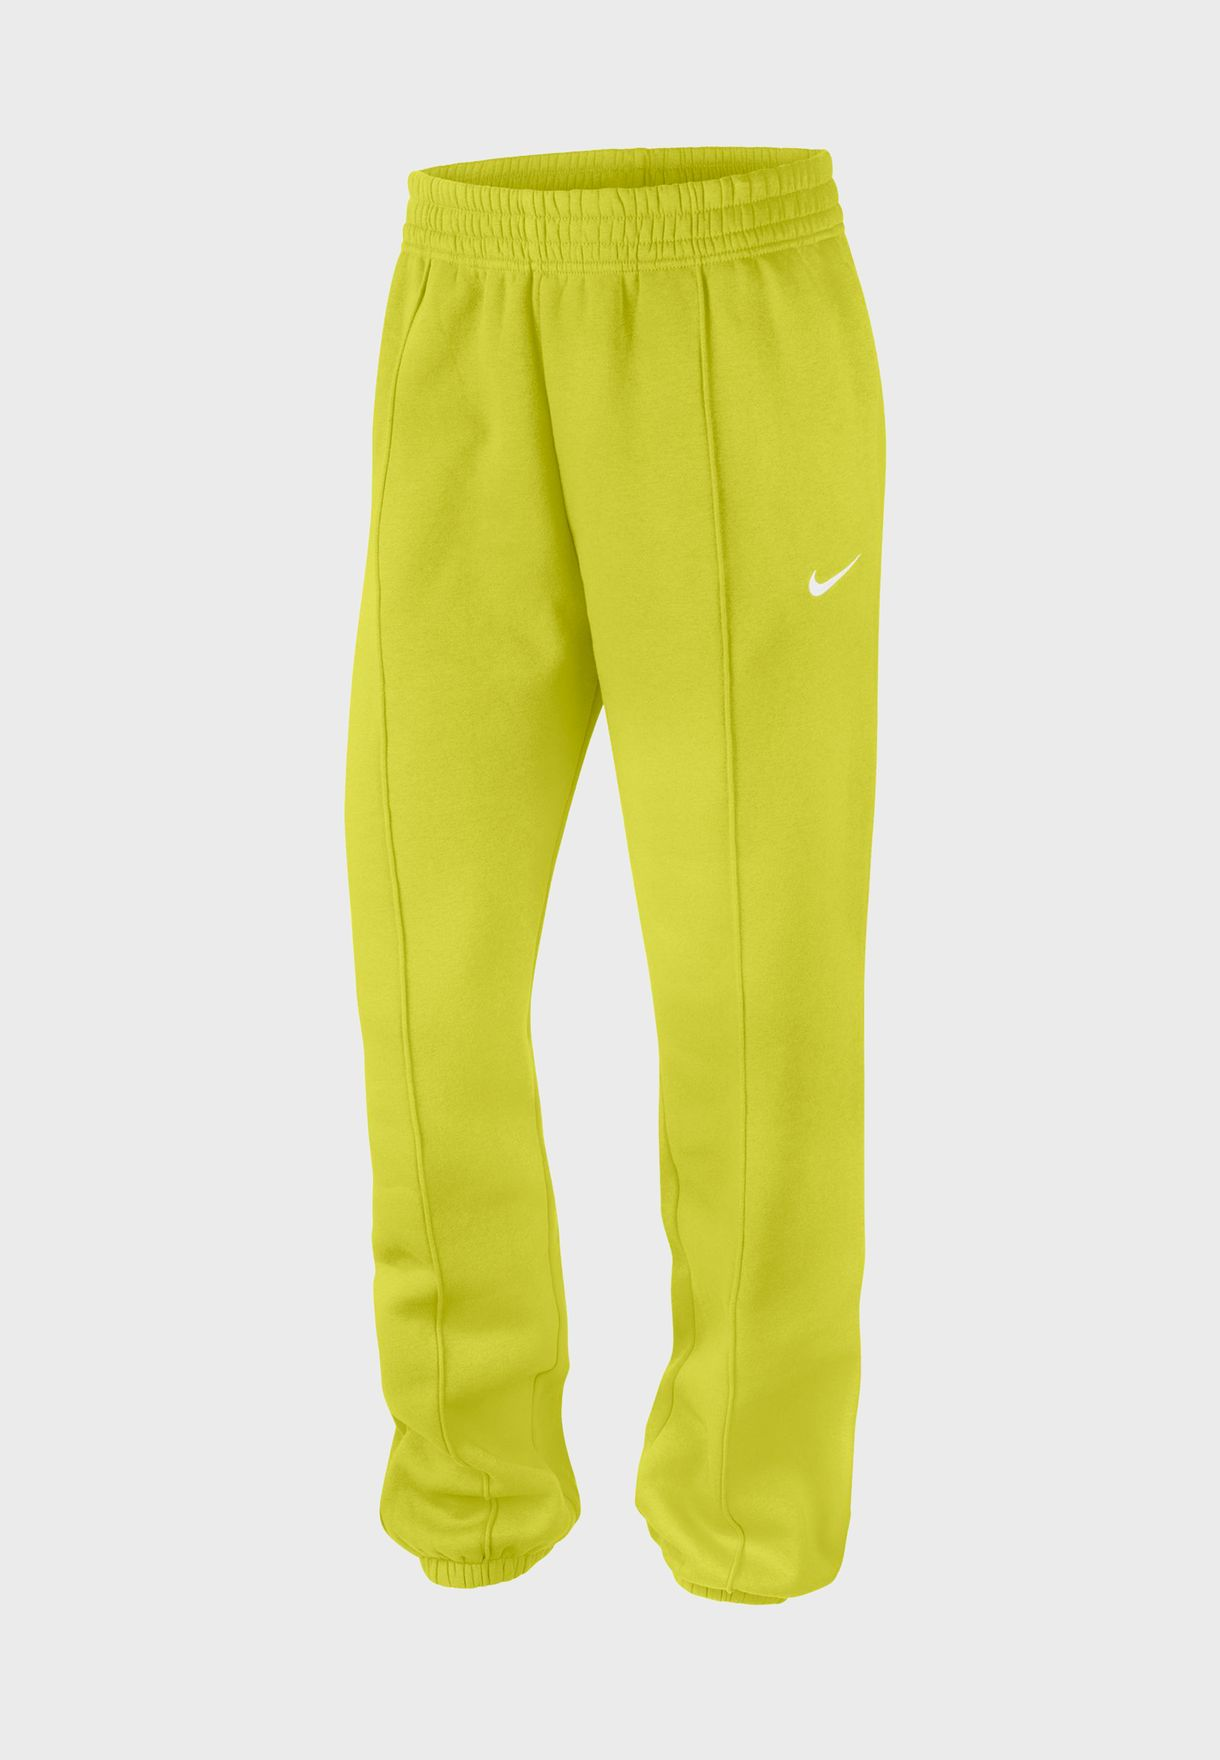 NSW Trend Fleece Sweatpants